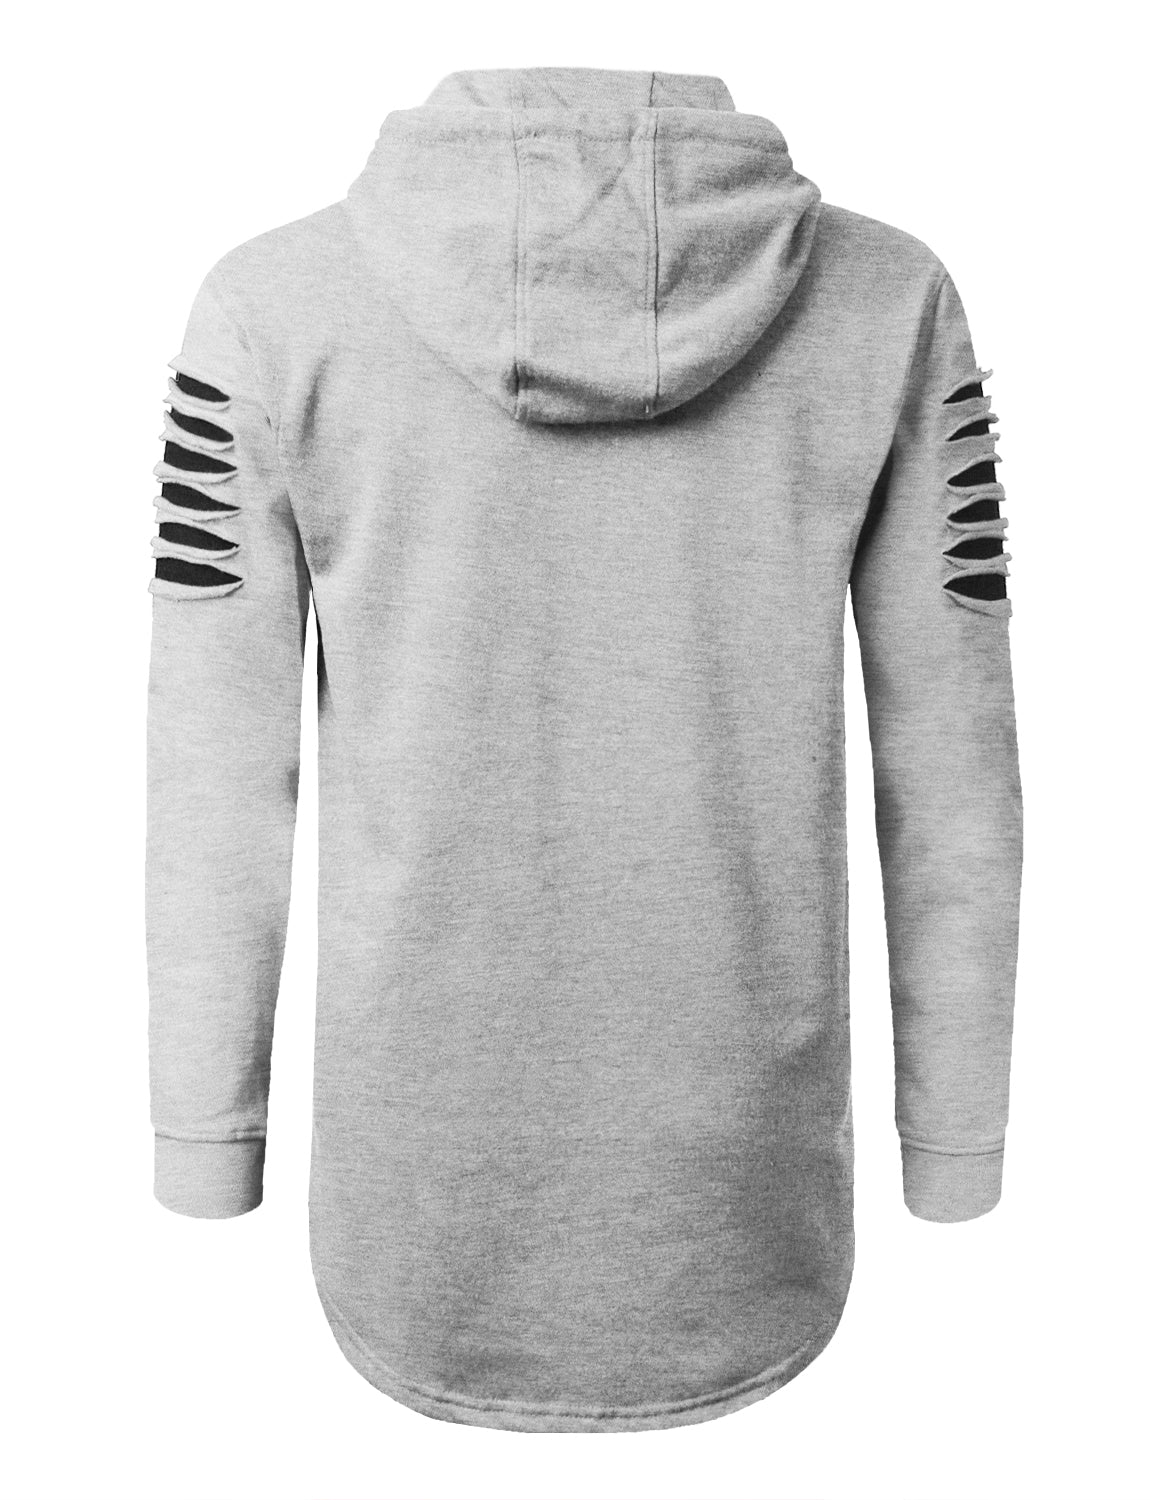 HGRAY Razor Slashed Fleece Hoodie - URBANCREWS